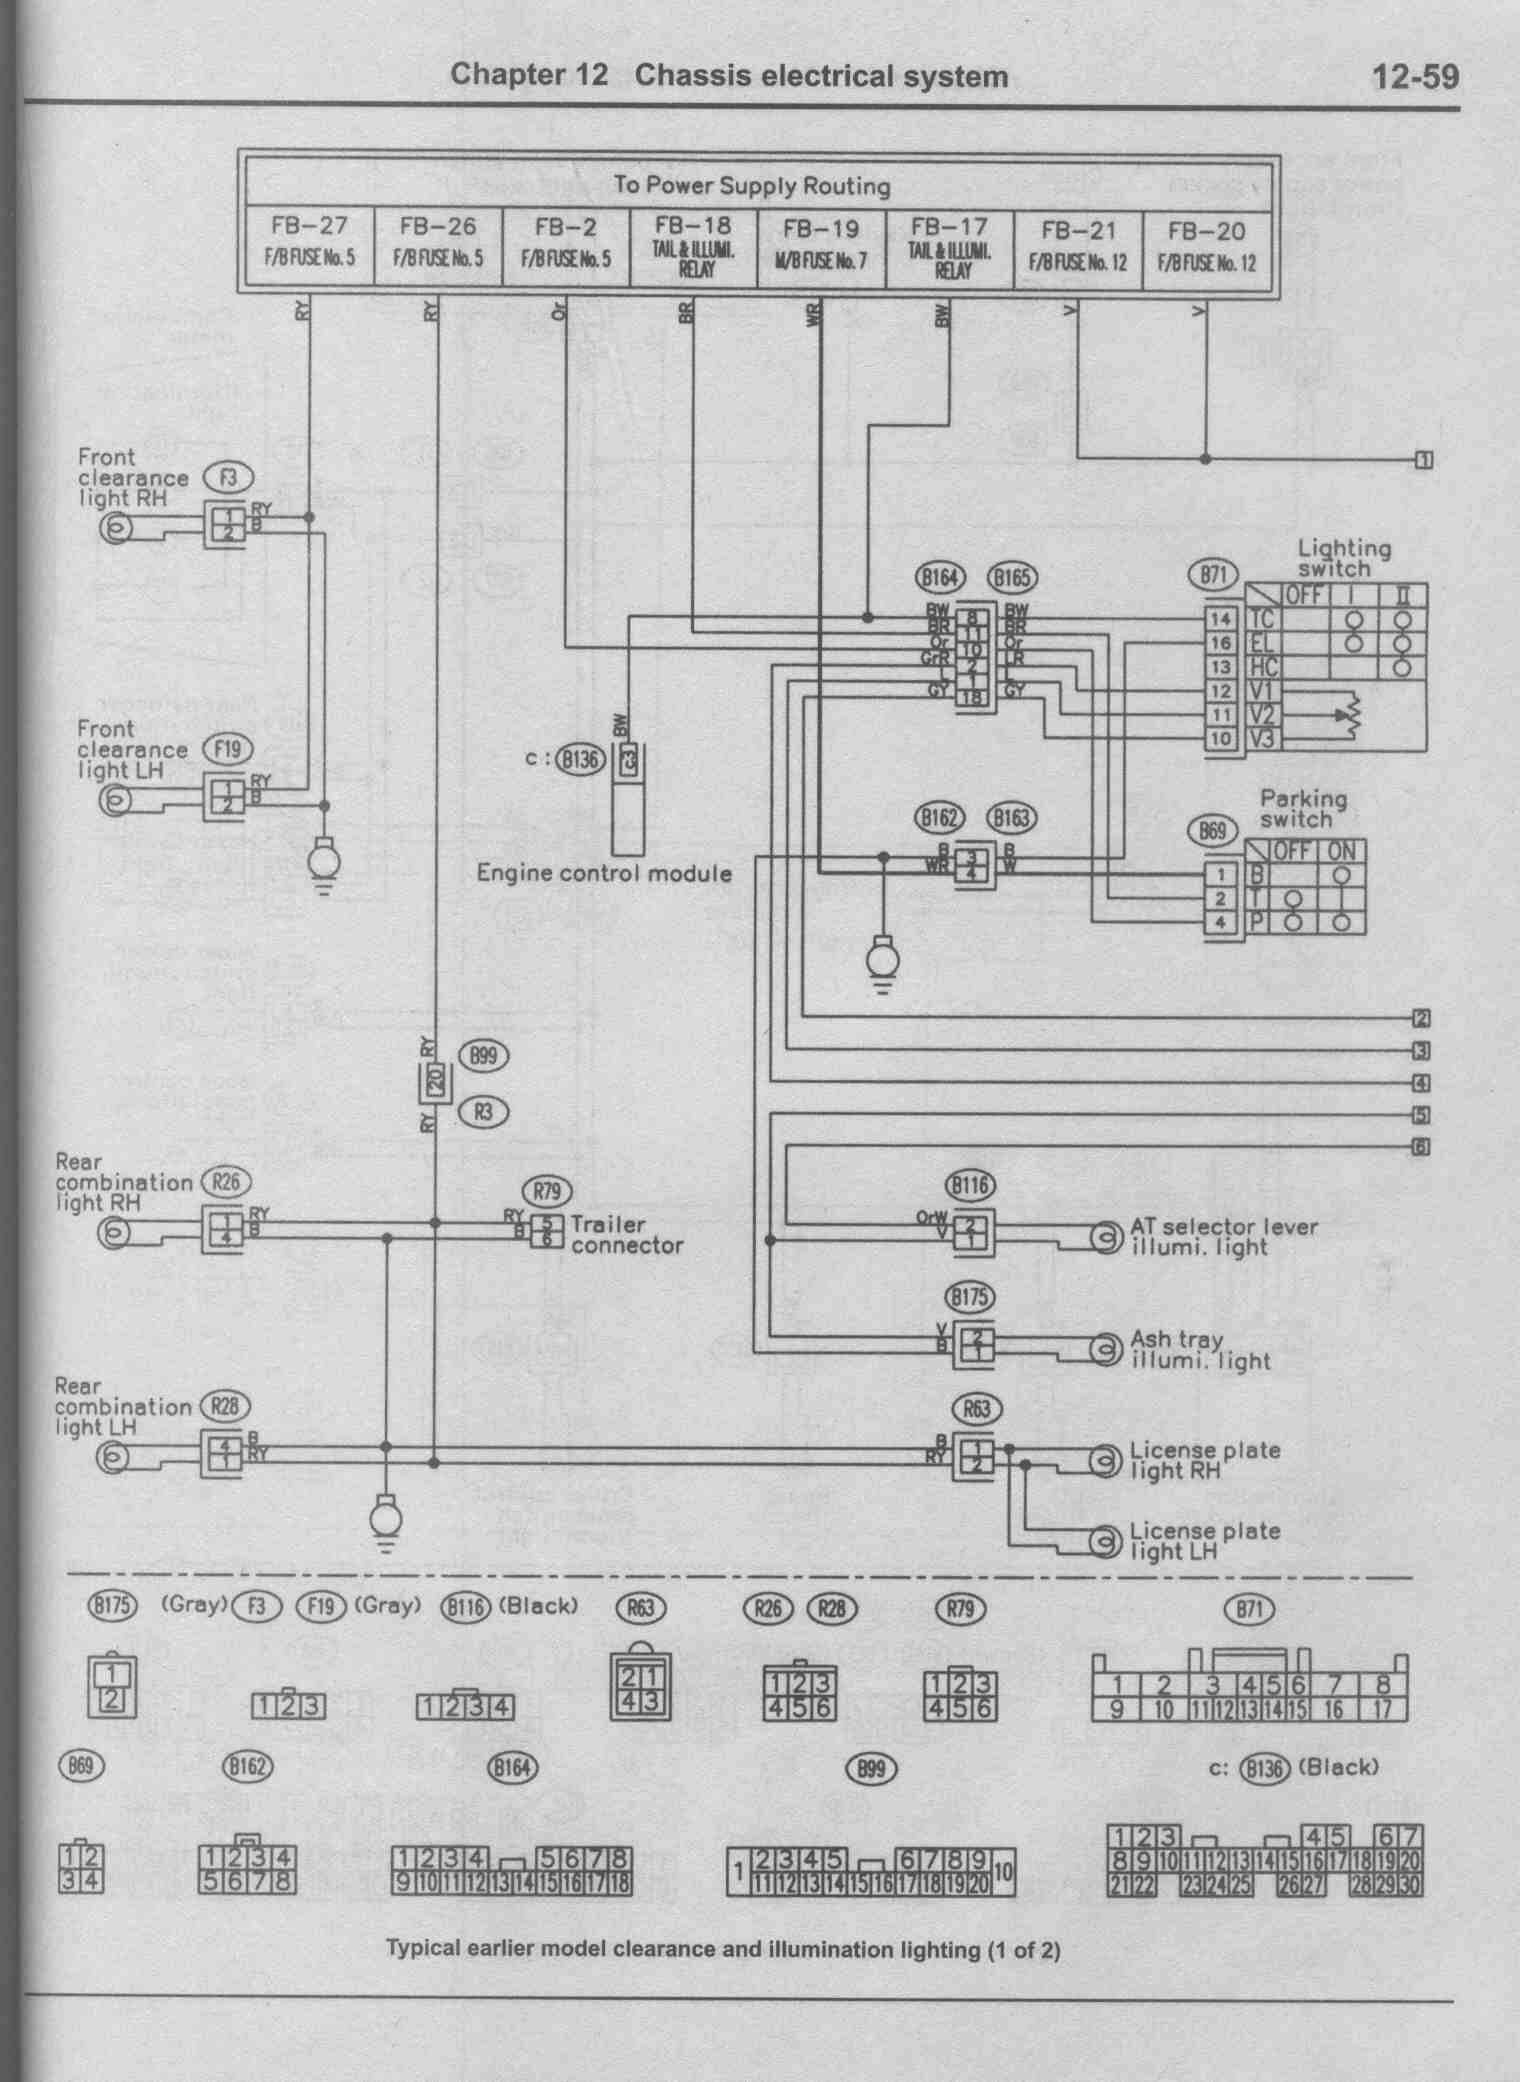 18863d1298655597 need wire schematic 2001 subaru outback illumination need wire schematic for 2001 subaru outback subaru outback 1998 Subaru Legacy Wiring-Diagram at aneh.co